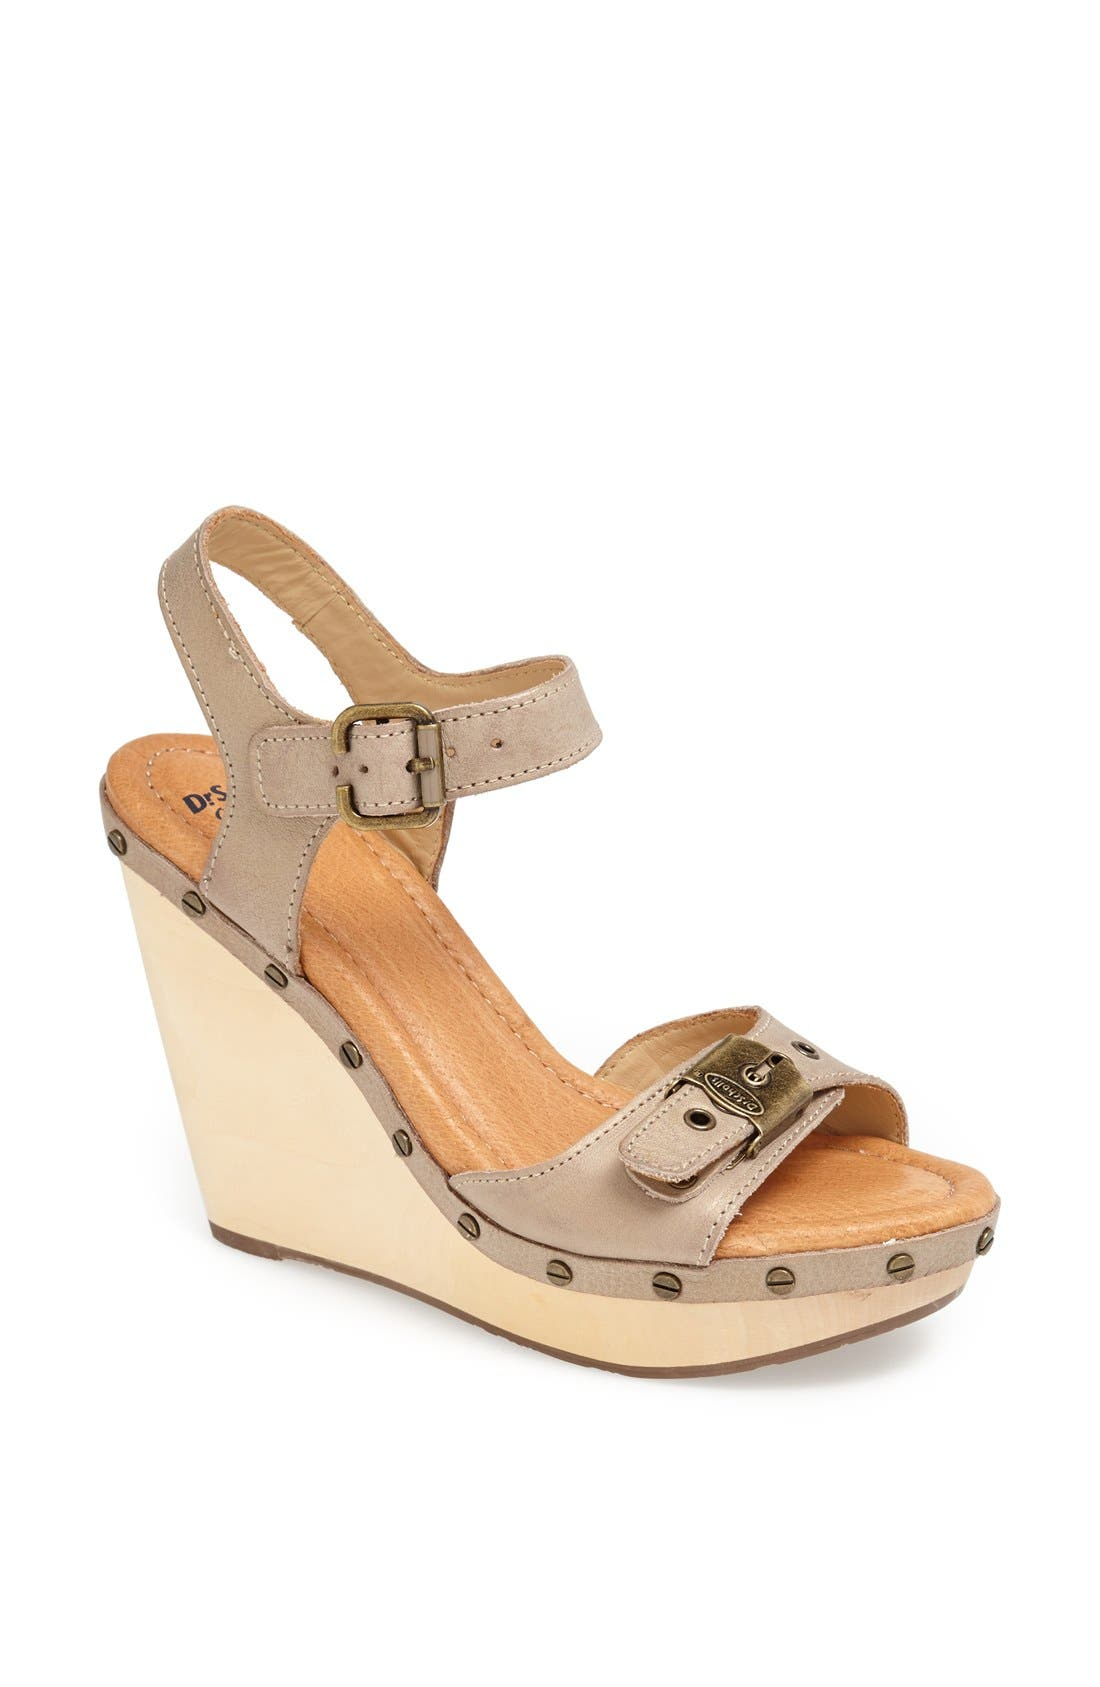 Alternate Image 1 Selected - Dr. Scholl's Original Collection 'Lucia' Sandal